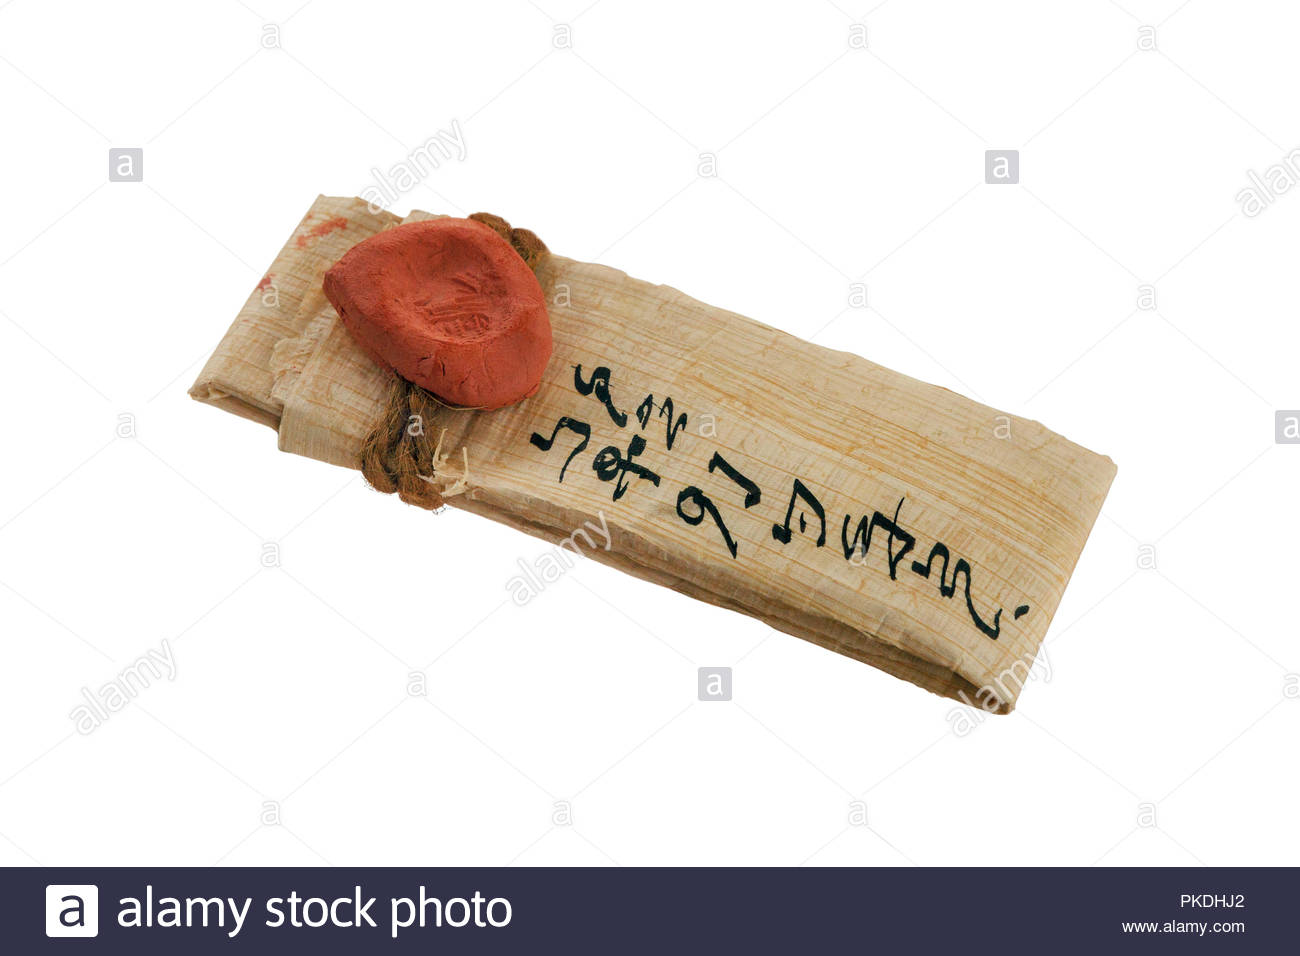 Ancient Hebrew Replica Letter, Document with a Clay Seal Made by a Signet Ring - Stock Image